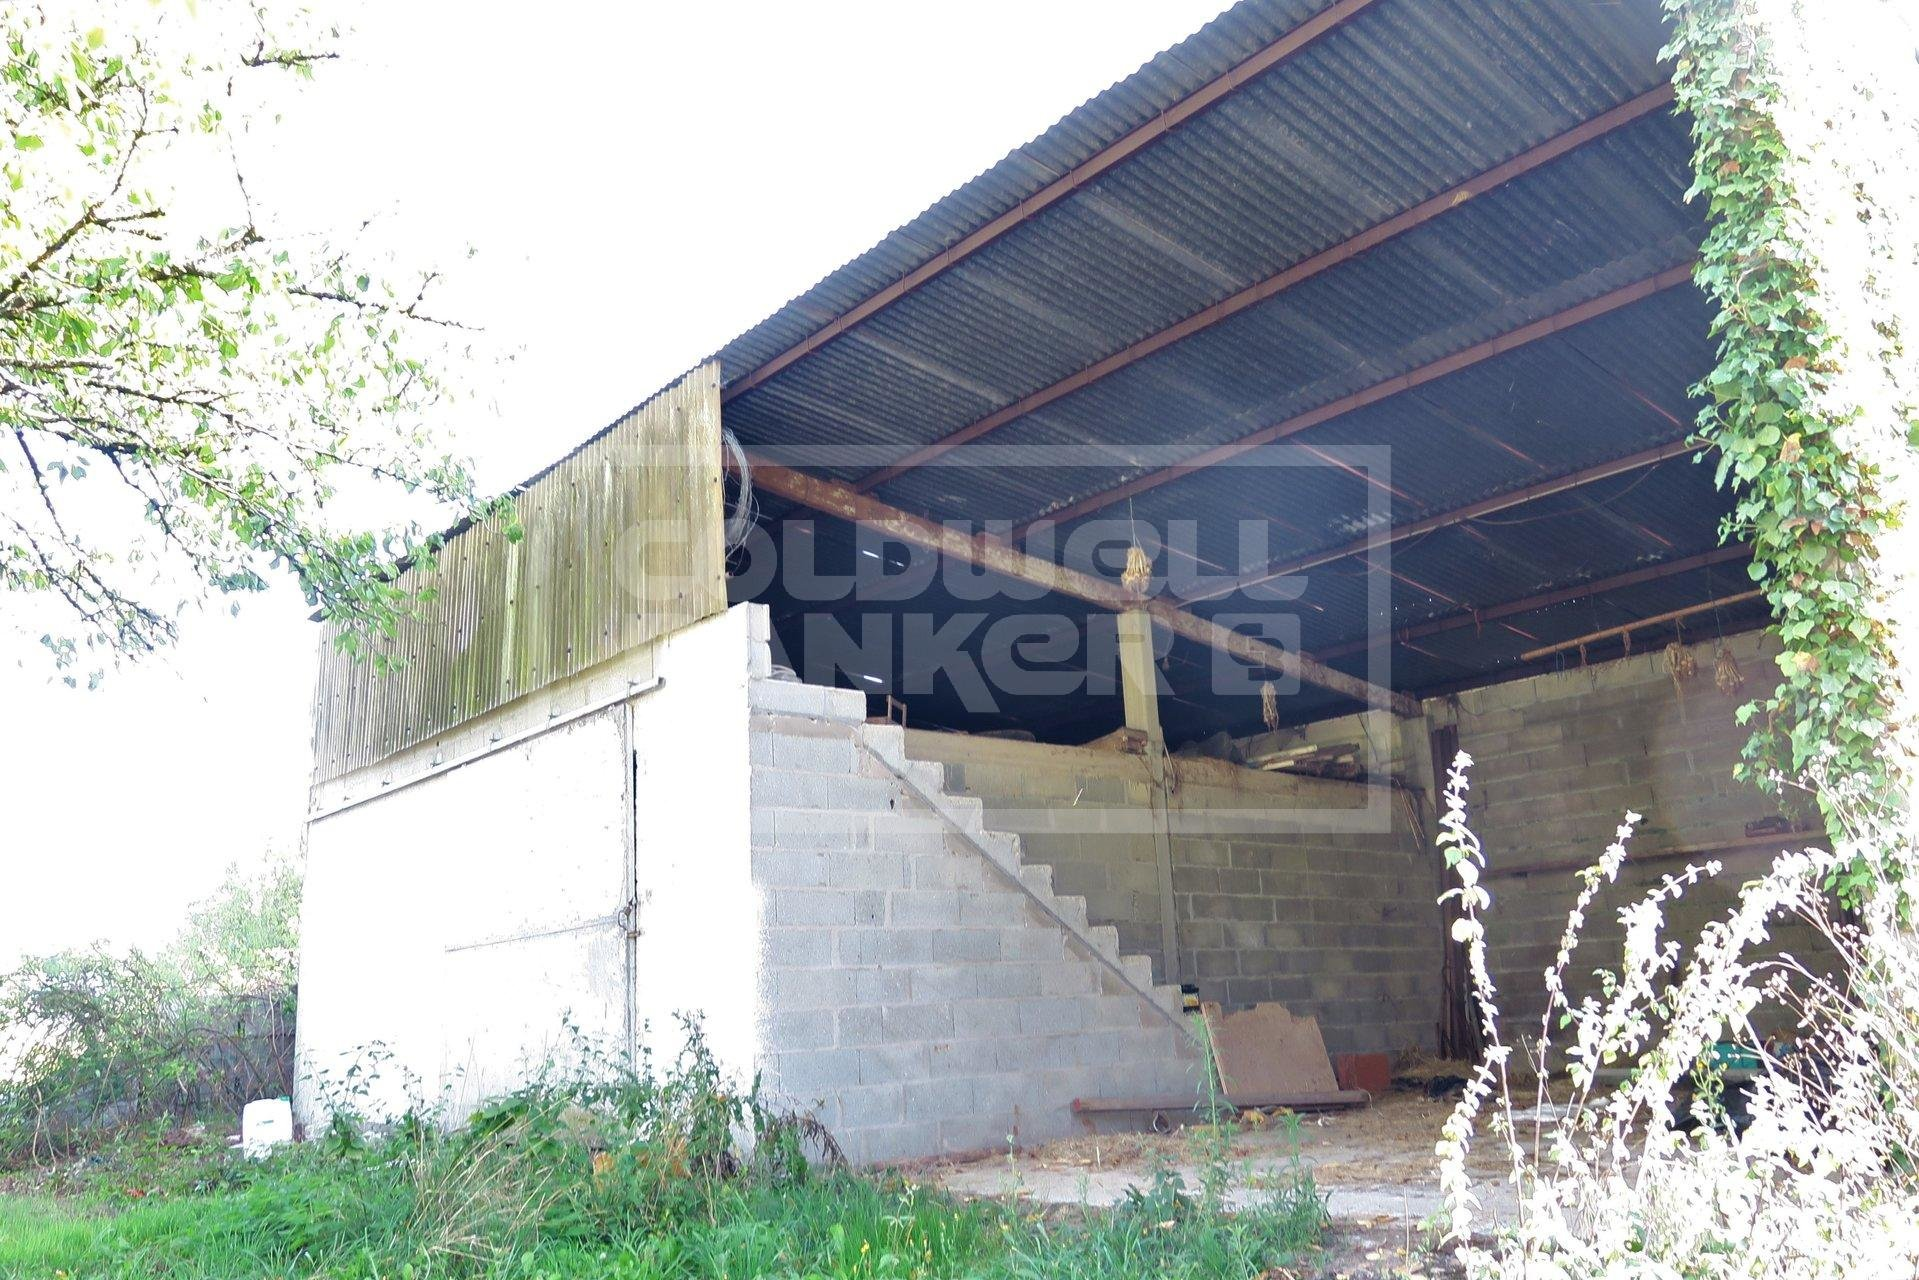 1965 house on basement with large plot and garage